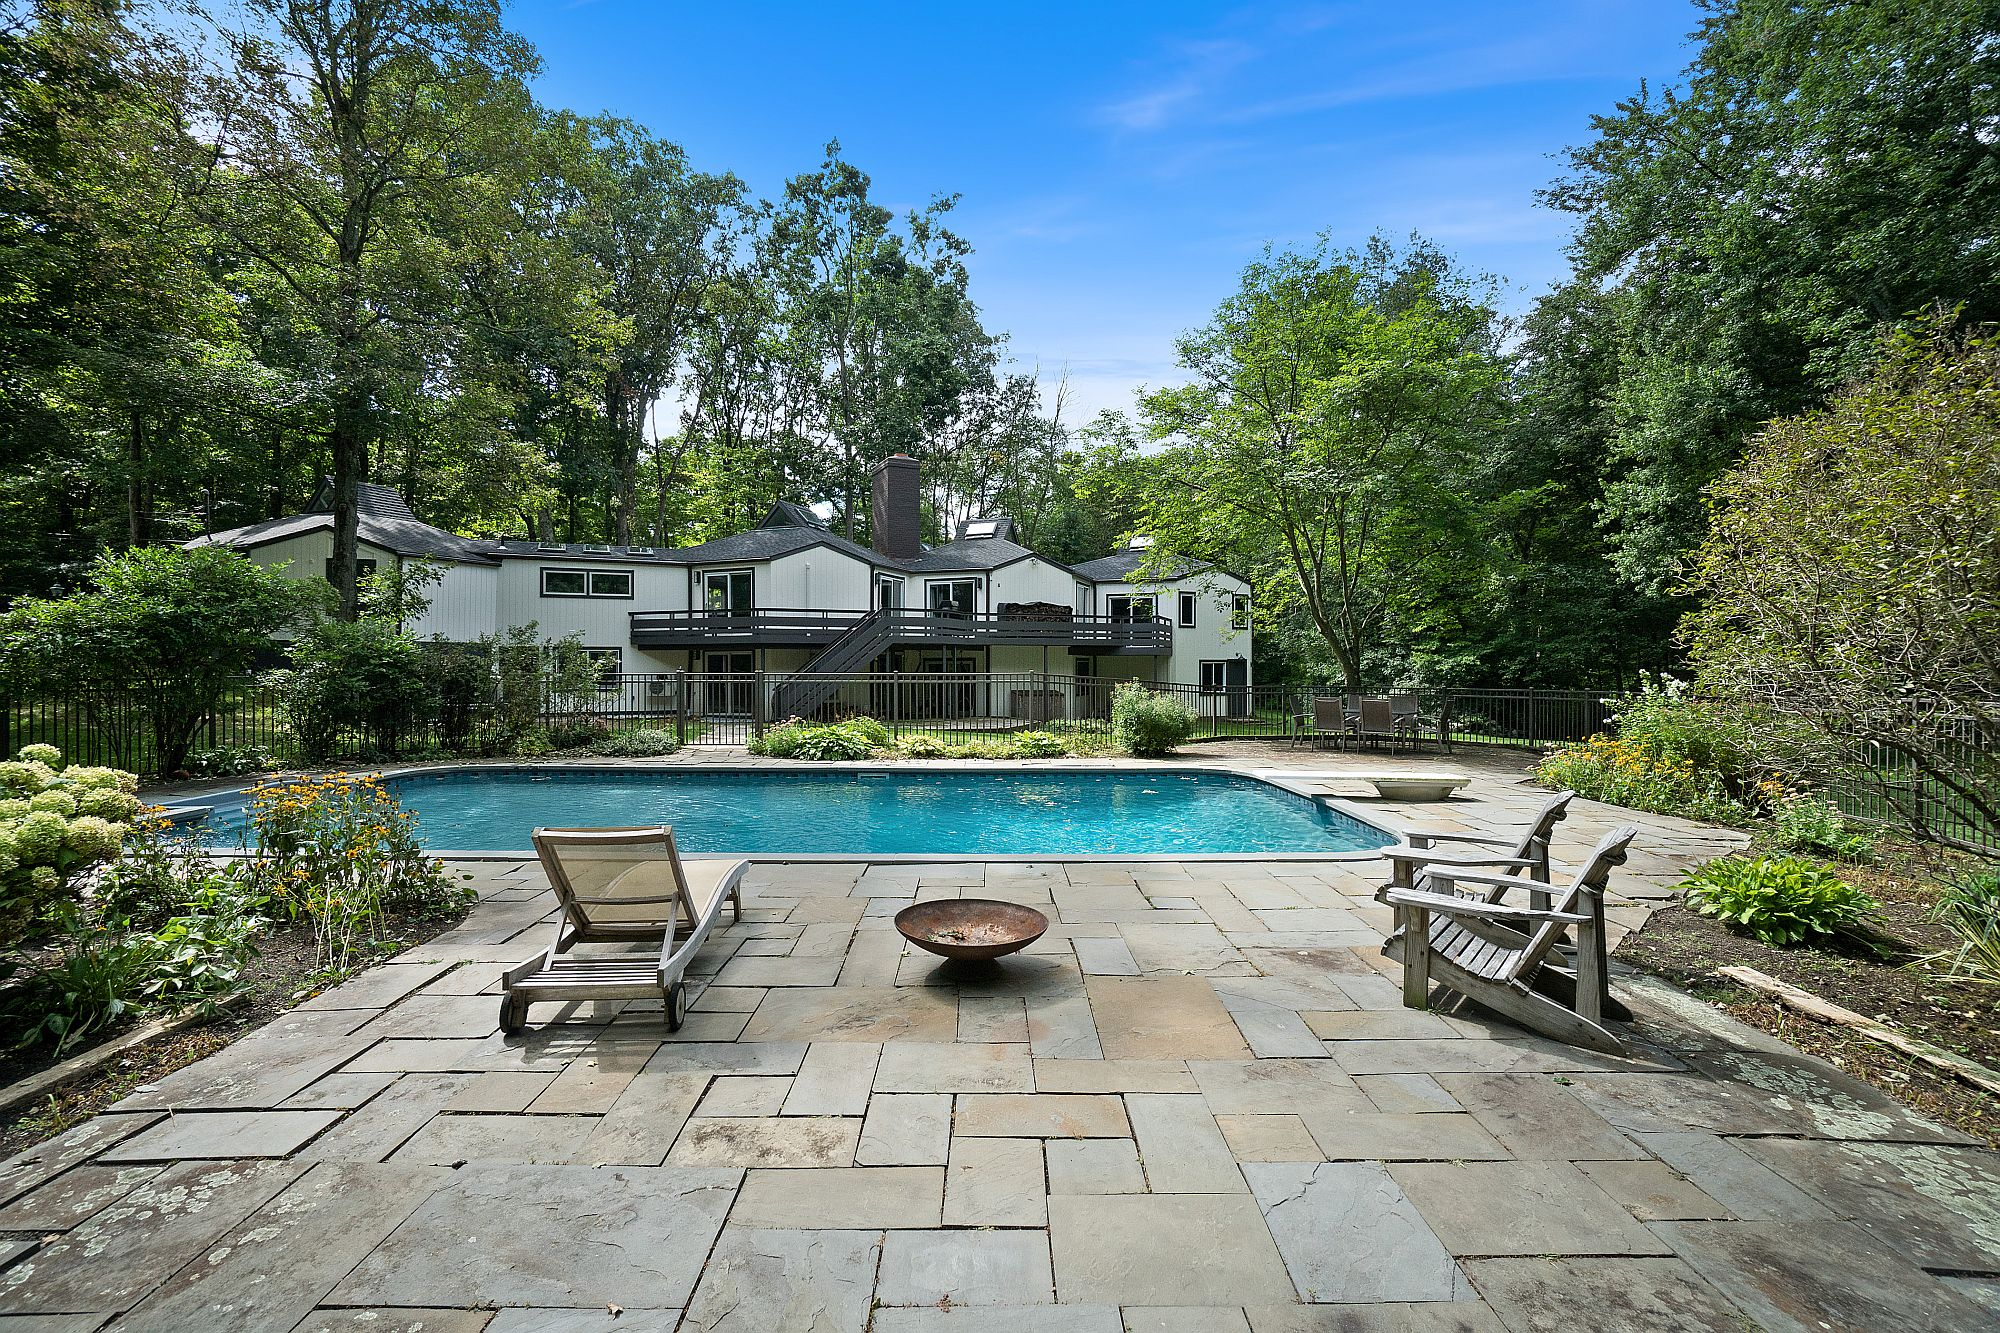 Expansive Deck Garden And Pool Area Of The Contemporary